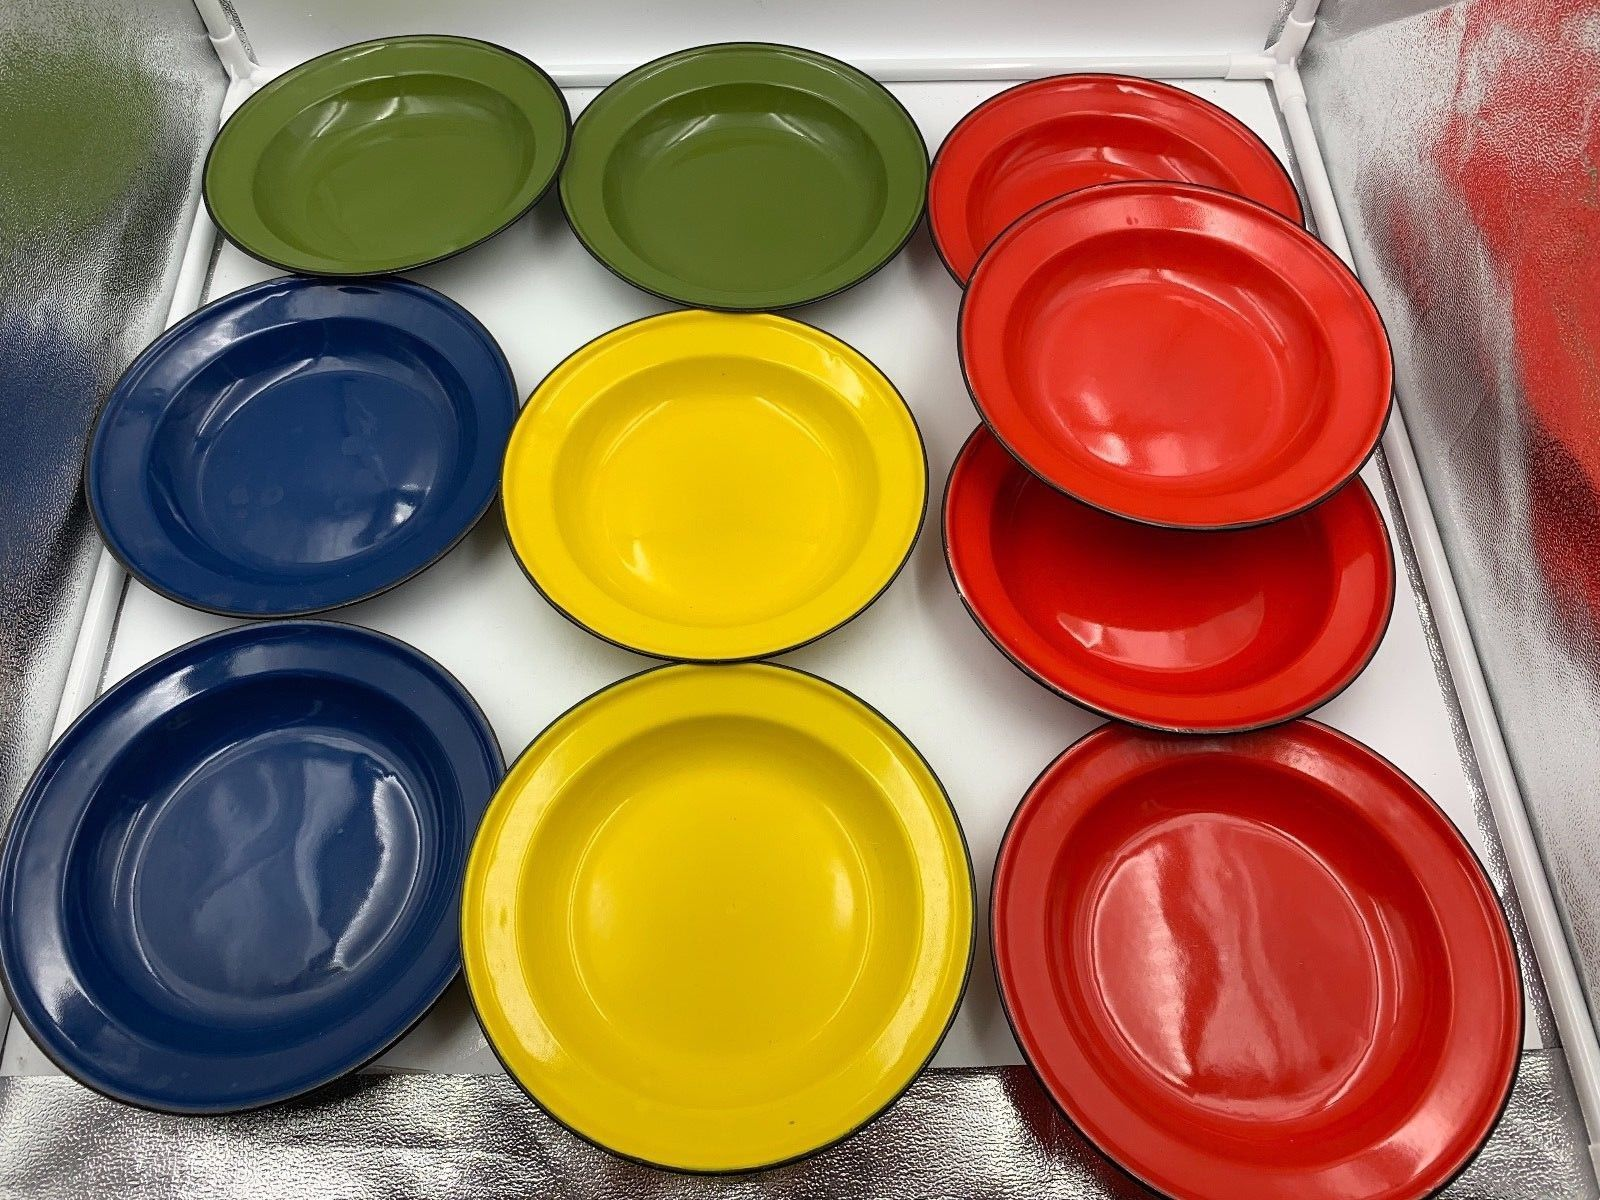 """1970s Poland 4 Color Enamelware Silesia 8"""" deep dishes/bowls 10 red yel grn blu"""